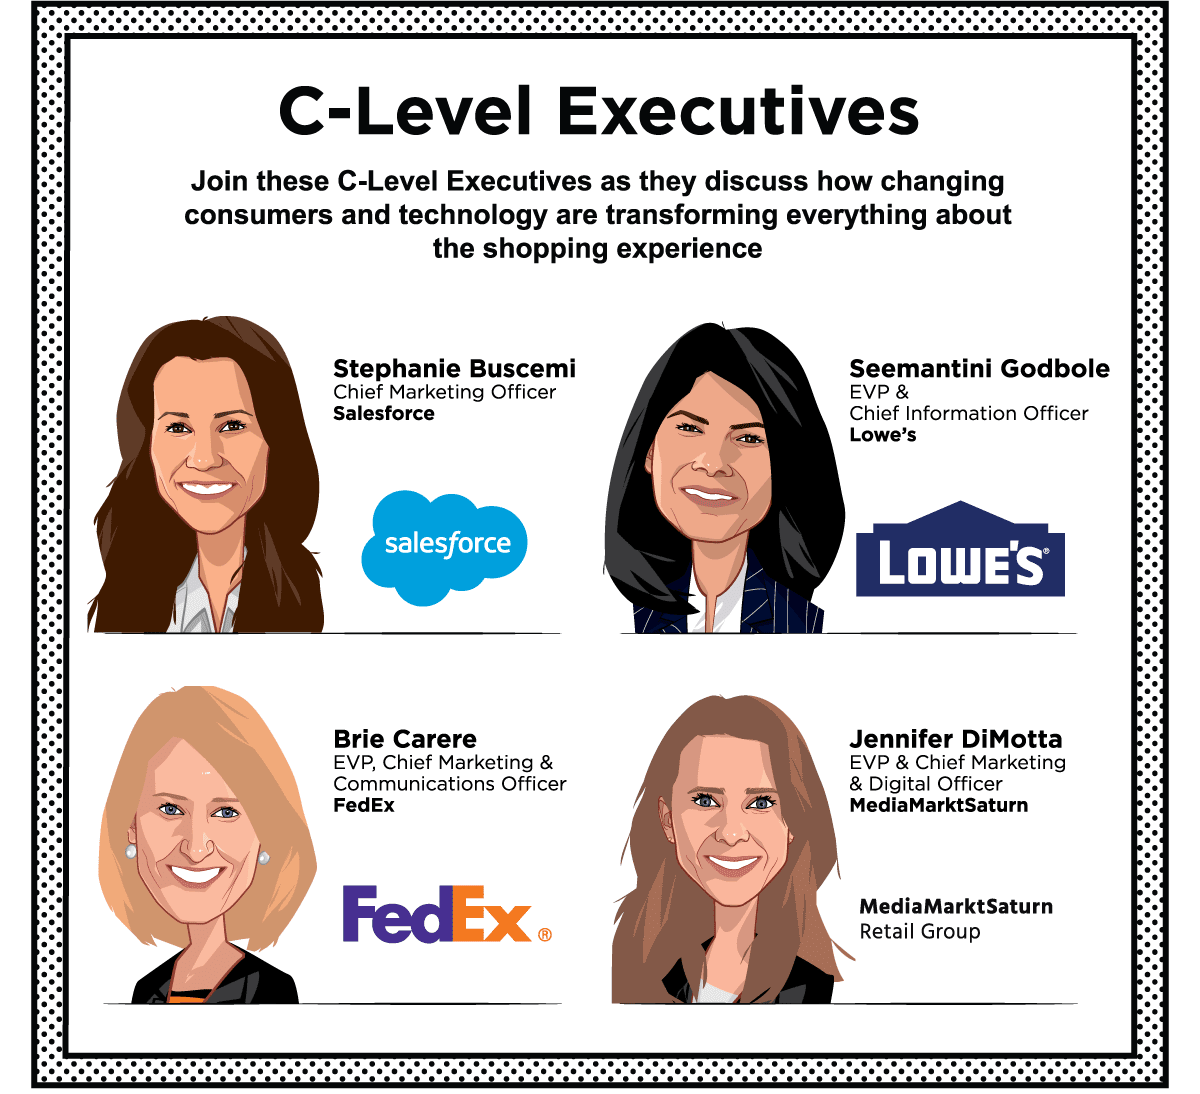 C-Level Executives -- Stephanie Buscemi, Chief Marketing Officer, Salesforce - Seemantini Godbole, EVP & Chief Information Officer, Lowe's - Brie Carere, EVP, Chief Marketing & Communications Officer, FedEx - Jennifer DiMotta, EVP & Chief Marketing & Digital Officer, MediaMarktSaturn